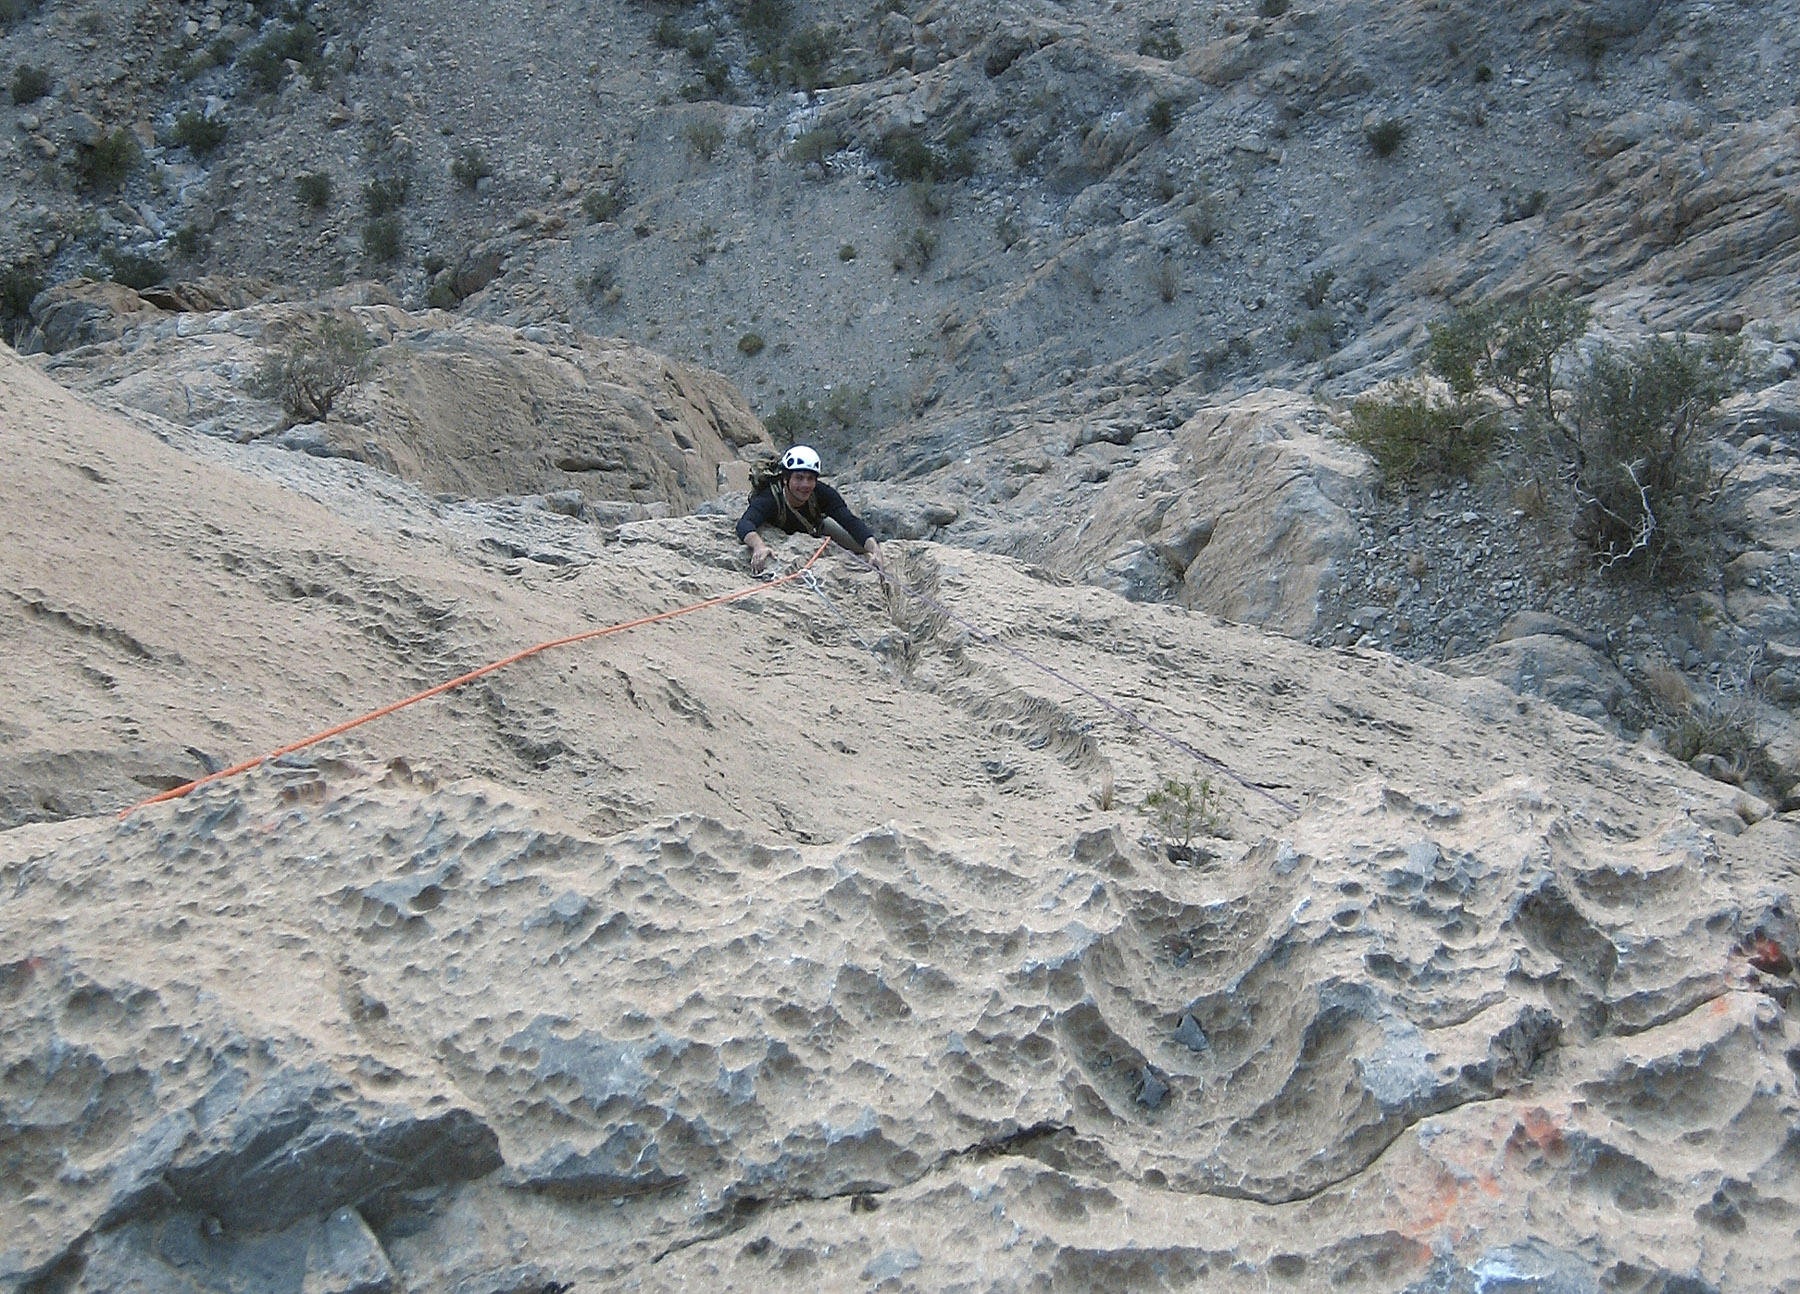 Marc Kuhn climbing excellent rough limestone on fifth pitch of Lulu.